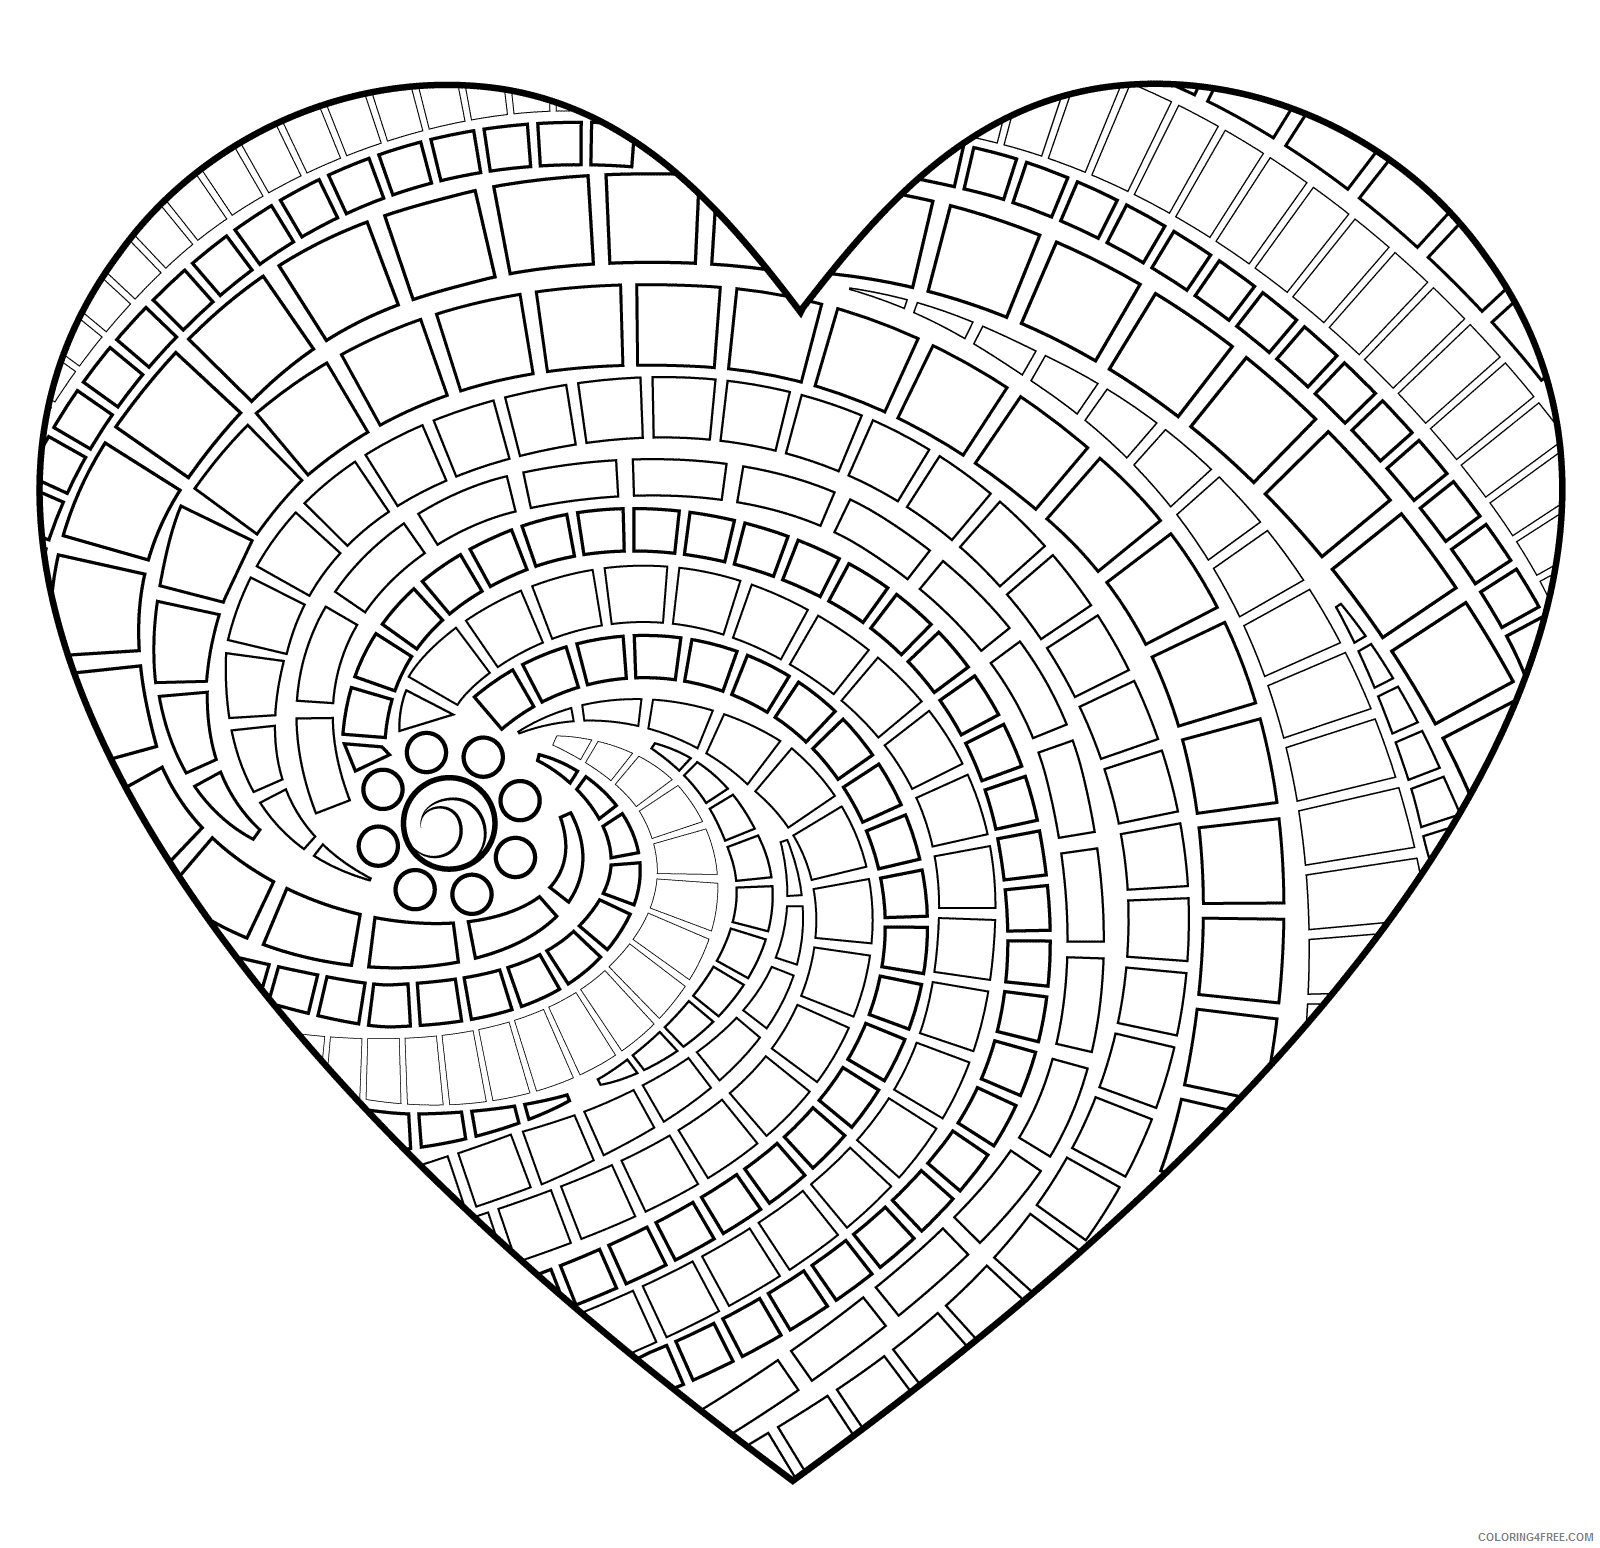 Heart Coloring Pages heart mosaic Printable 2021 3169 Coloring4free